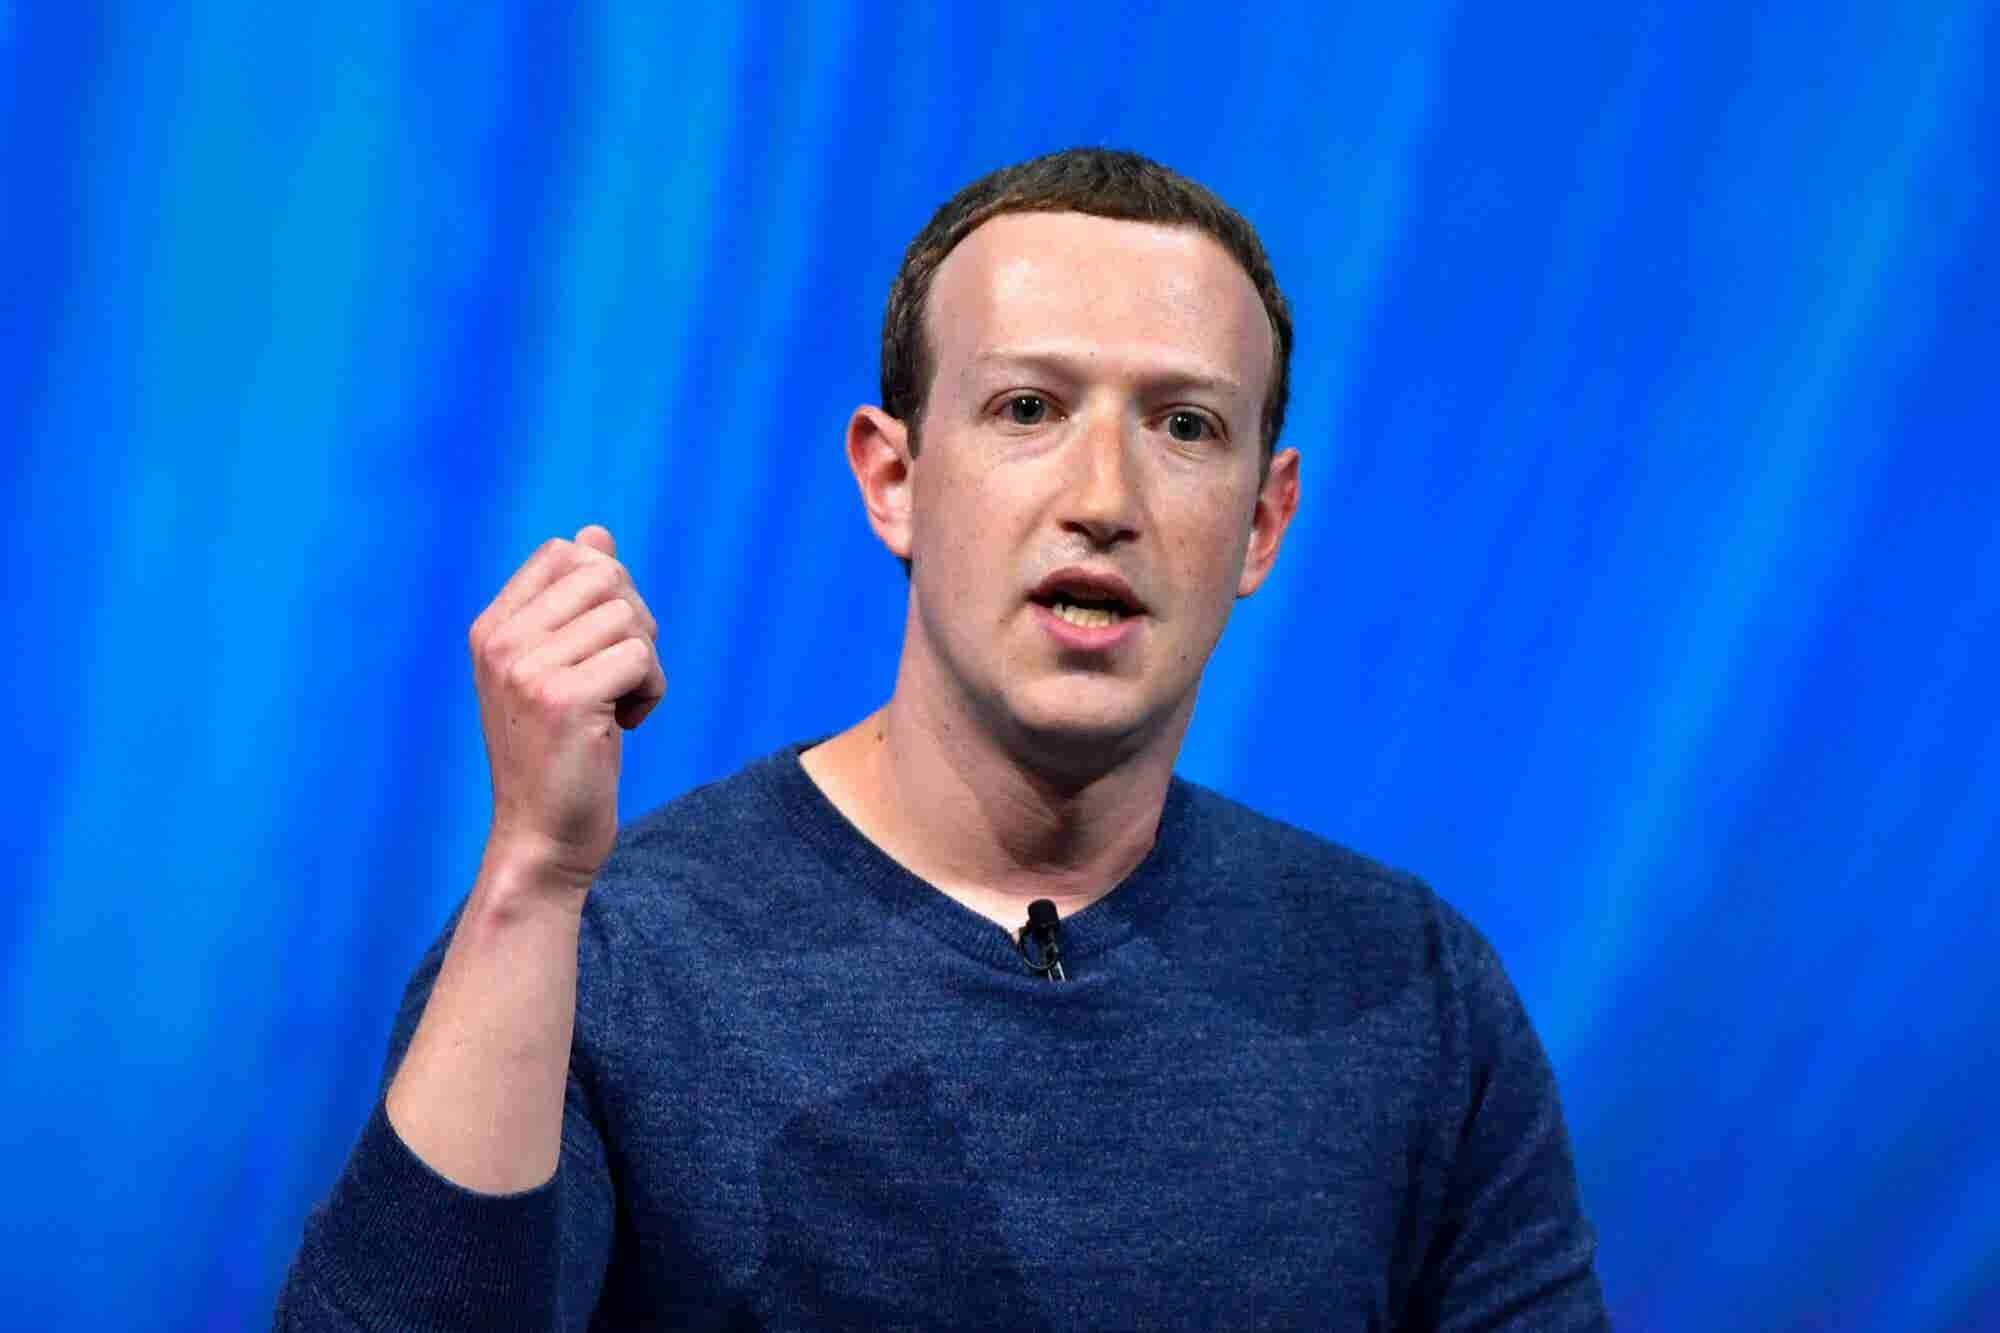 Mark Zuckerberg's 2019 New Year's Resolution Is Well-Meaning and Vague...